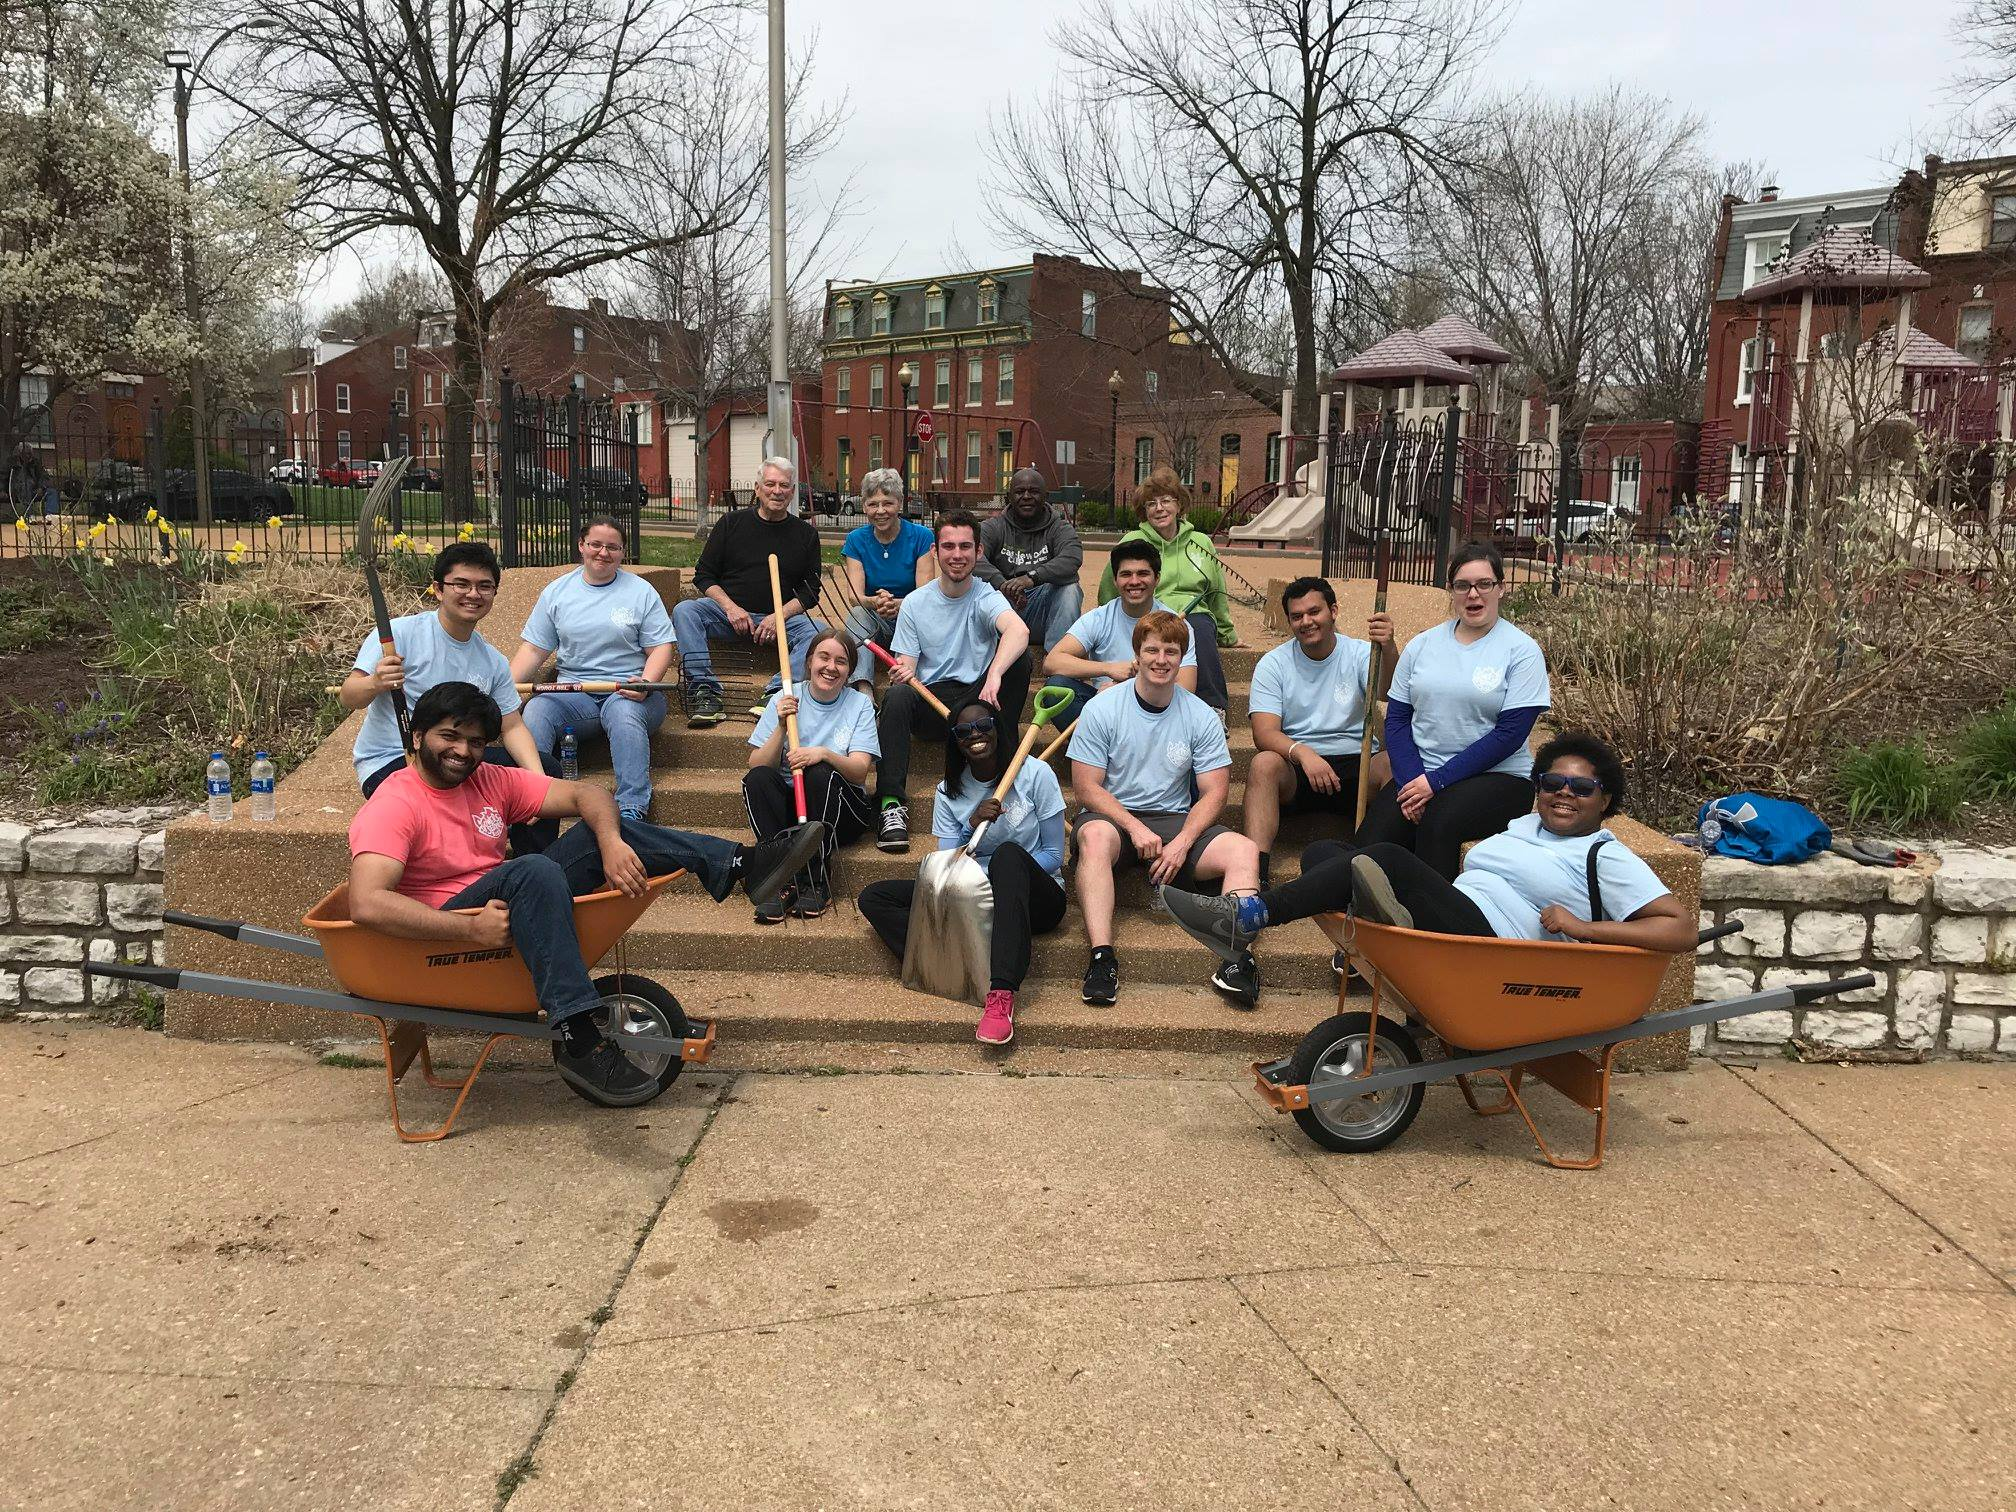 School and corporate groups often lend a hand beautifying Pontiac Park at the guidance of Beautification Chair Richard Eaton, back left